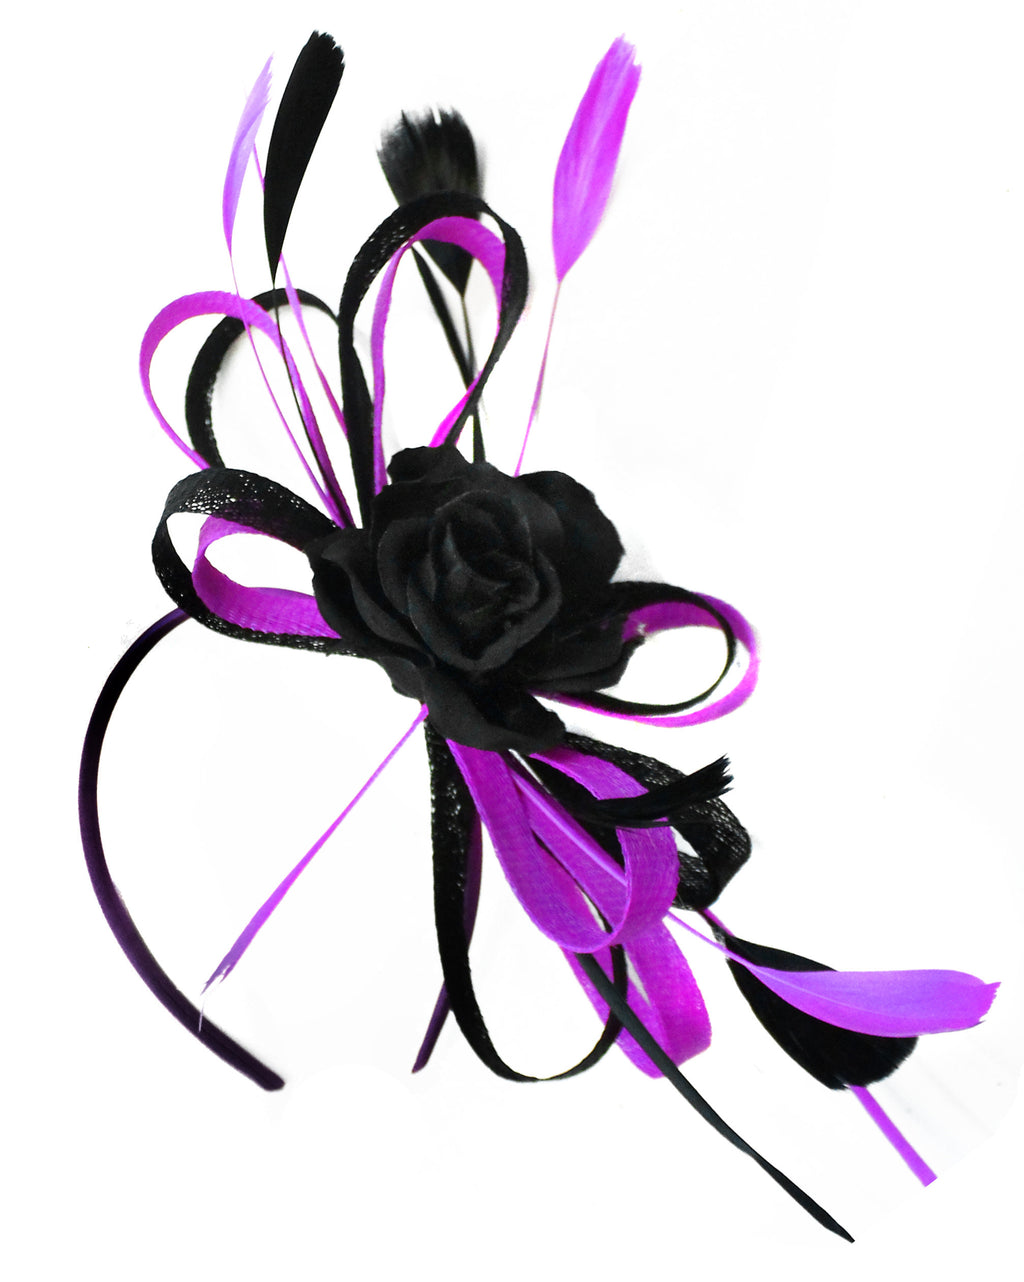 Caprilite Sinamay Rose Black and Cadbury Purple Fascinator on Headband Alice Band UK Wedding Ascot Races Loop